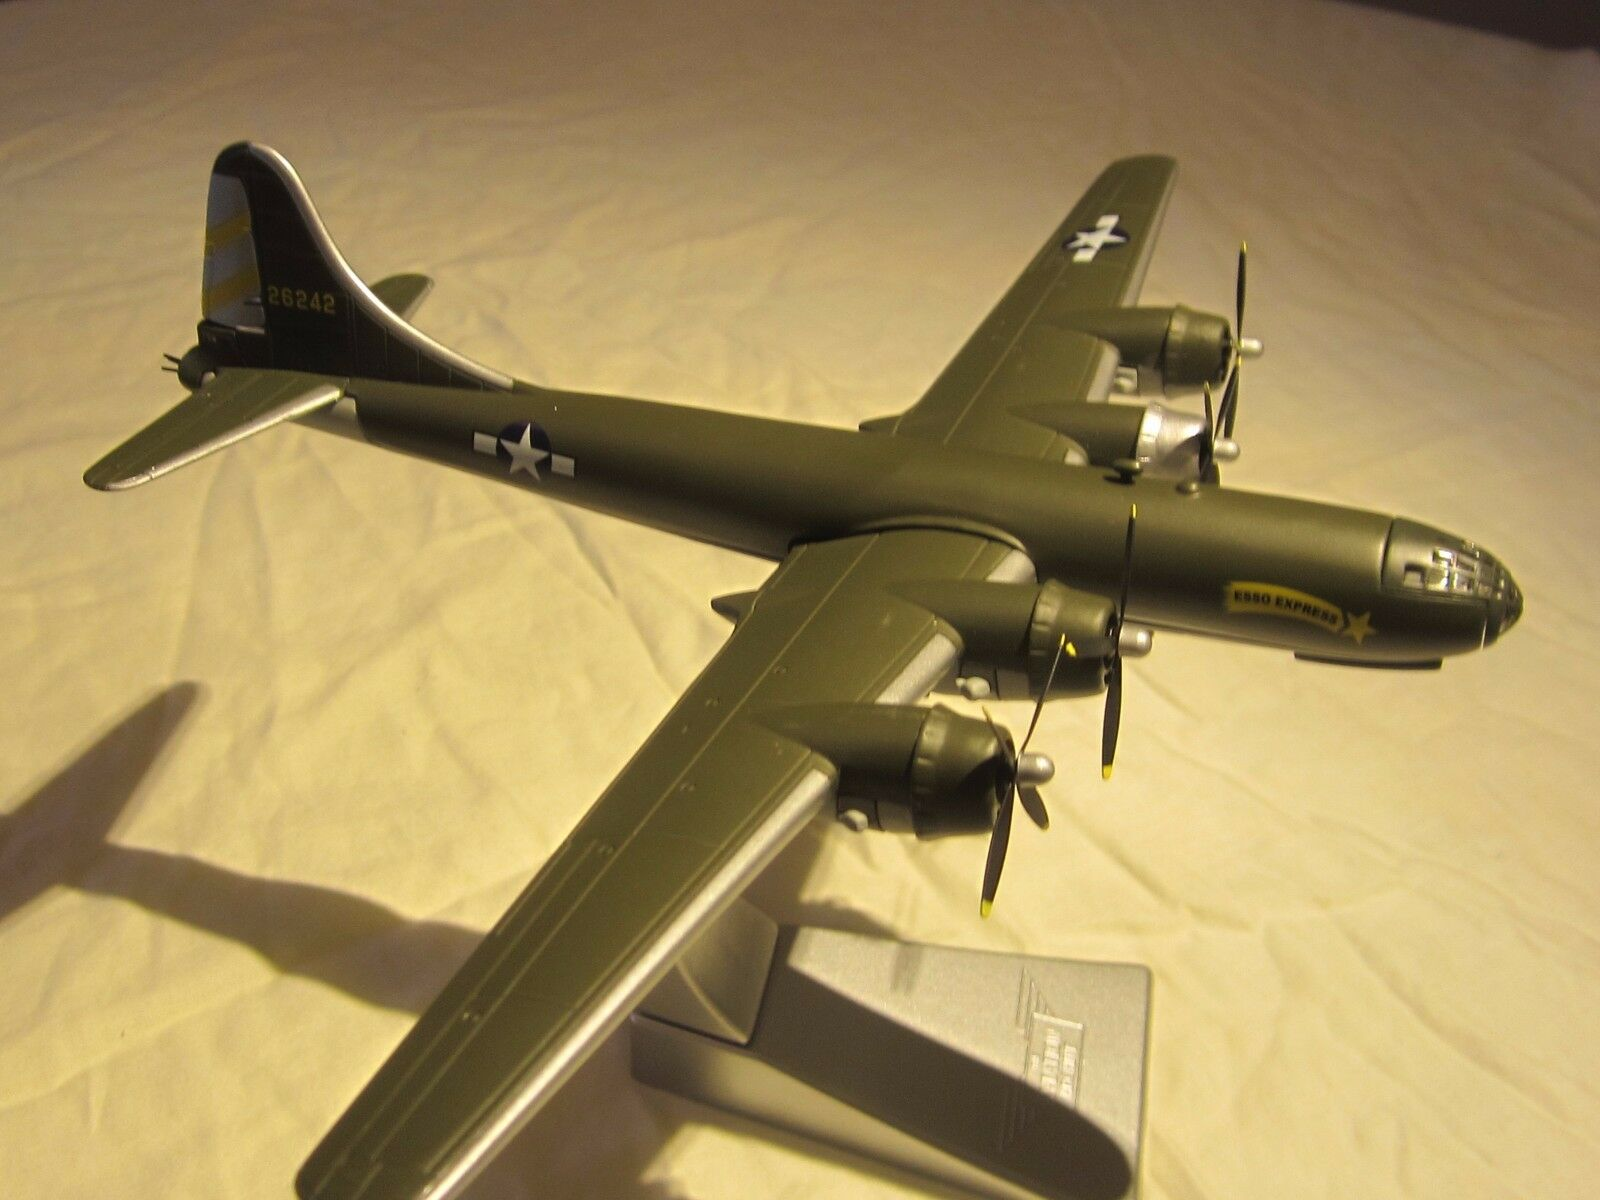 Boeing B-29 Superfortress  Esso Express  1 144 scale, die-cast model by Corgi.